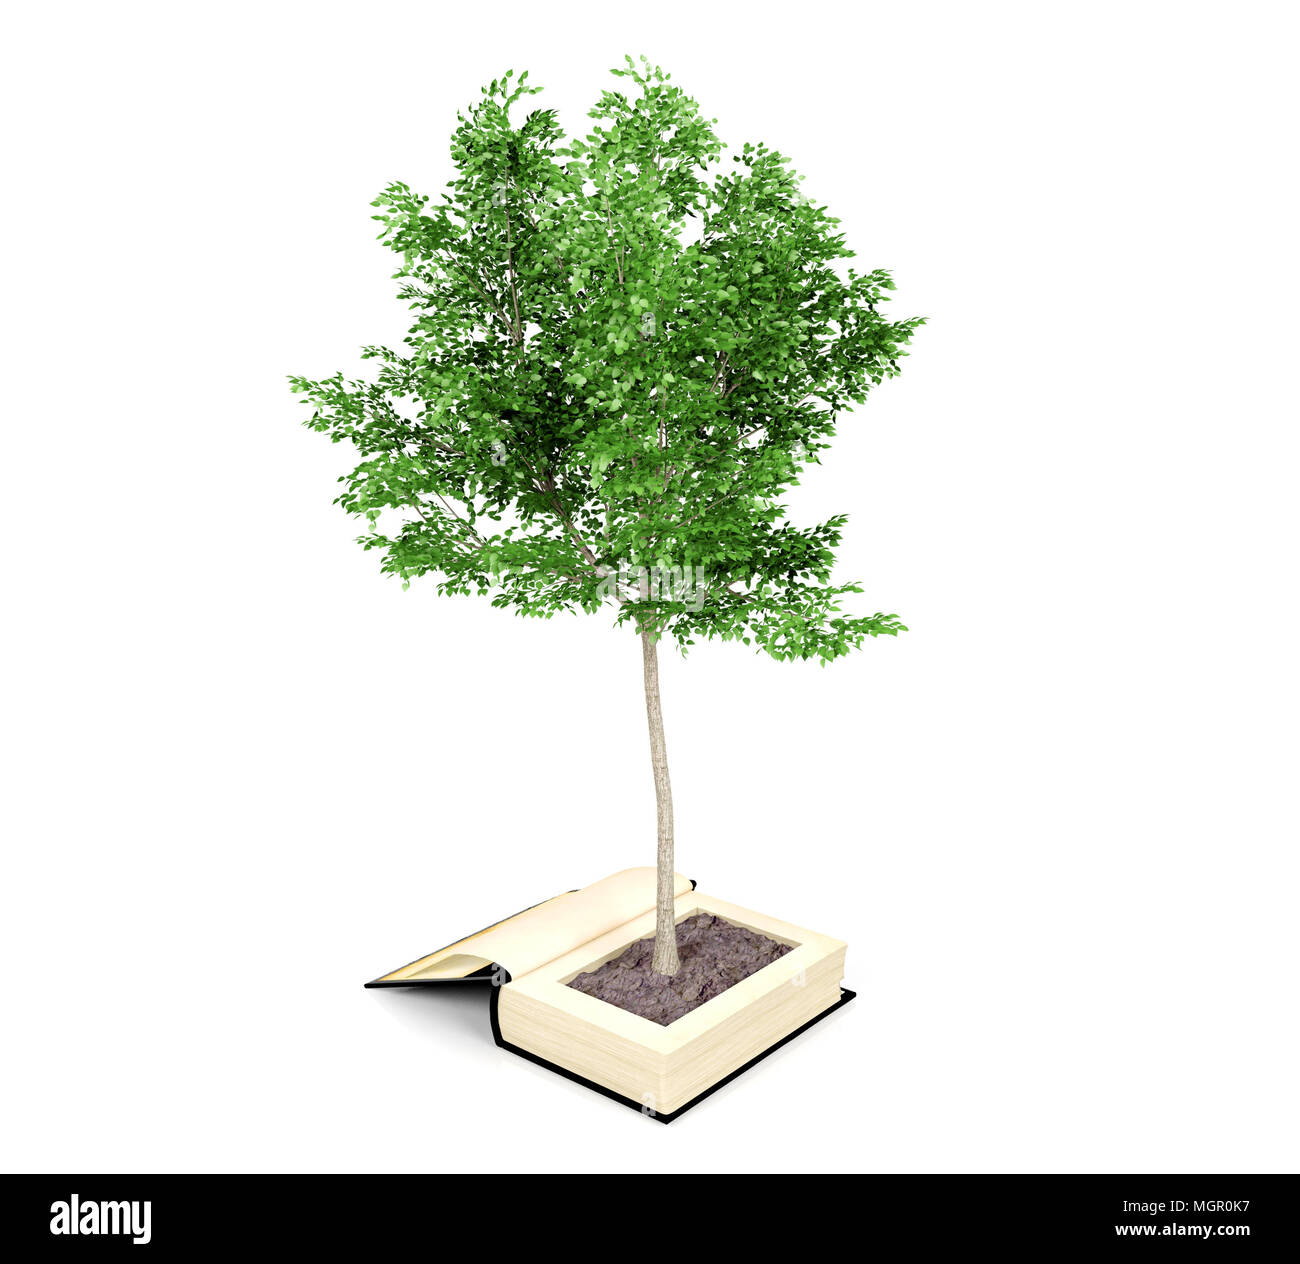 Tree growing from the old book. Reading develops imagination. Knowledge growth from education concept, 3D rendering - Stock Image